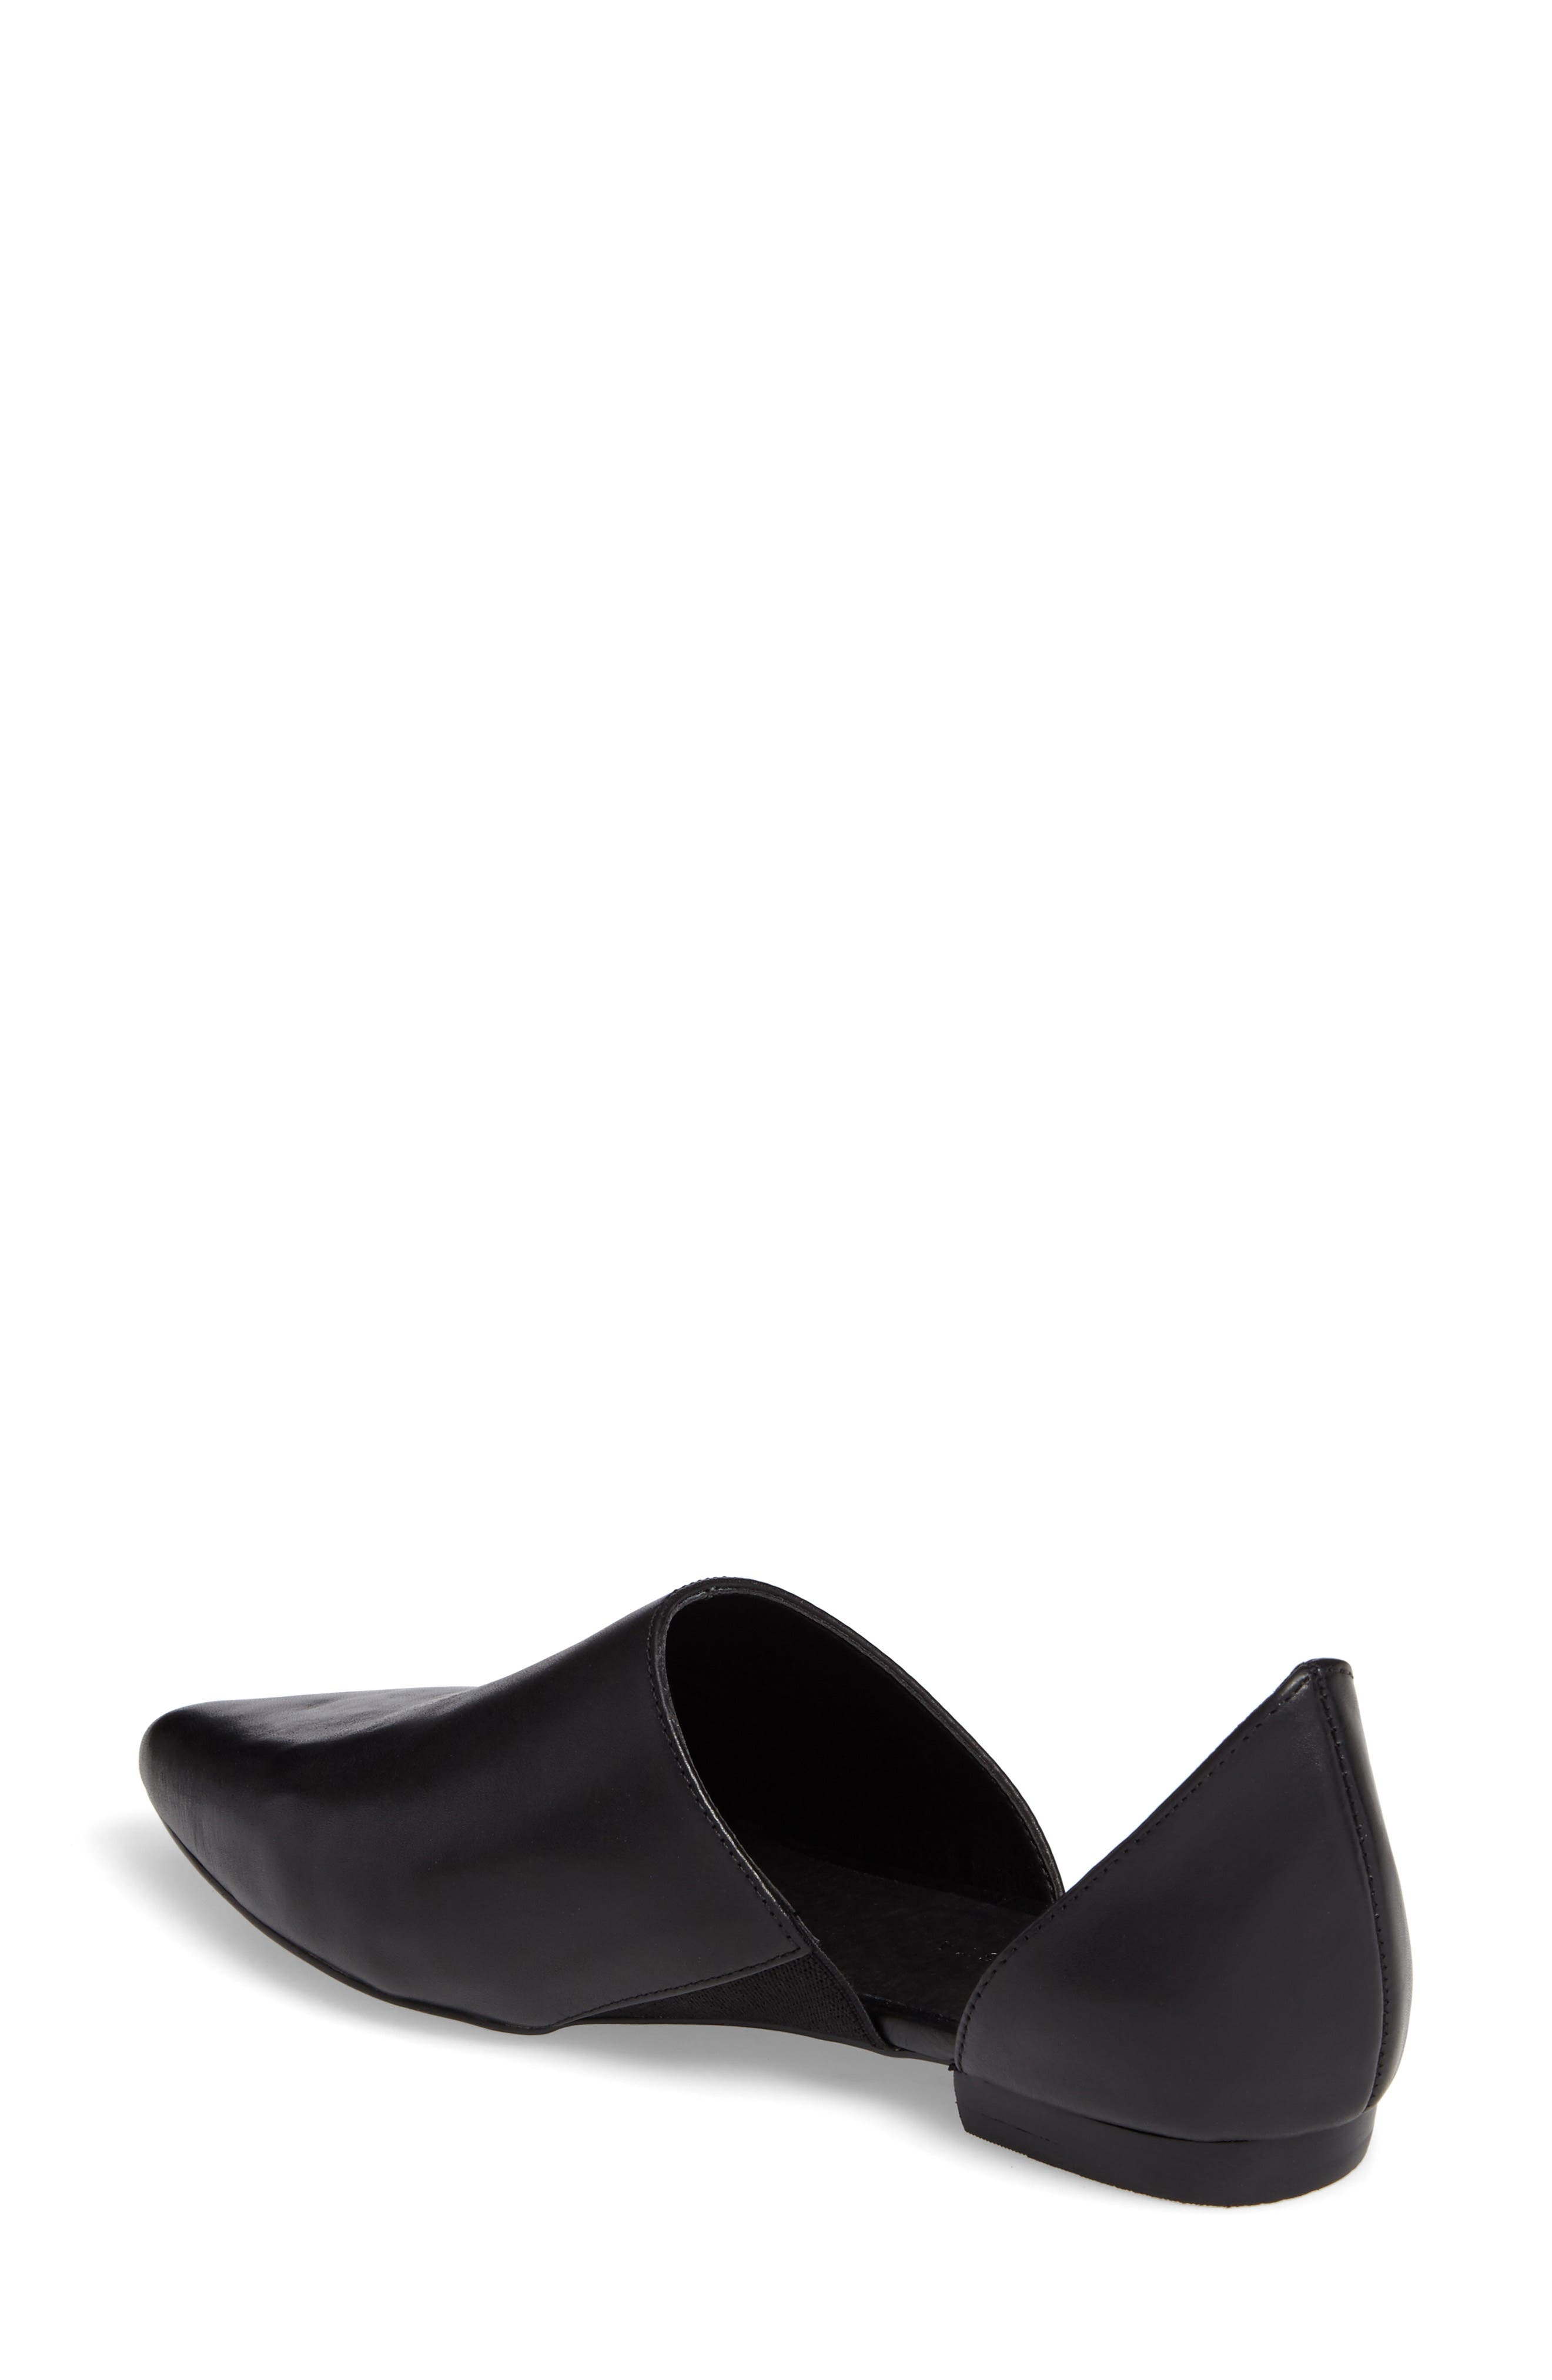 Danny d'Orsay Flat,                             Alternate thumbnail 2, color,                             BLACK/ BLACK LEATHER